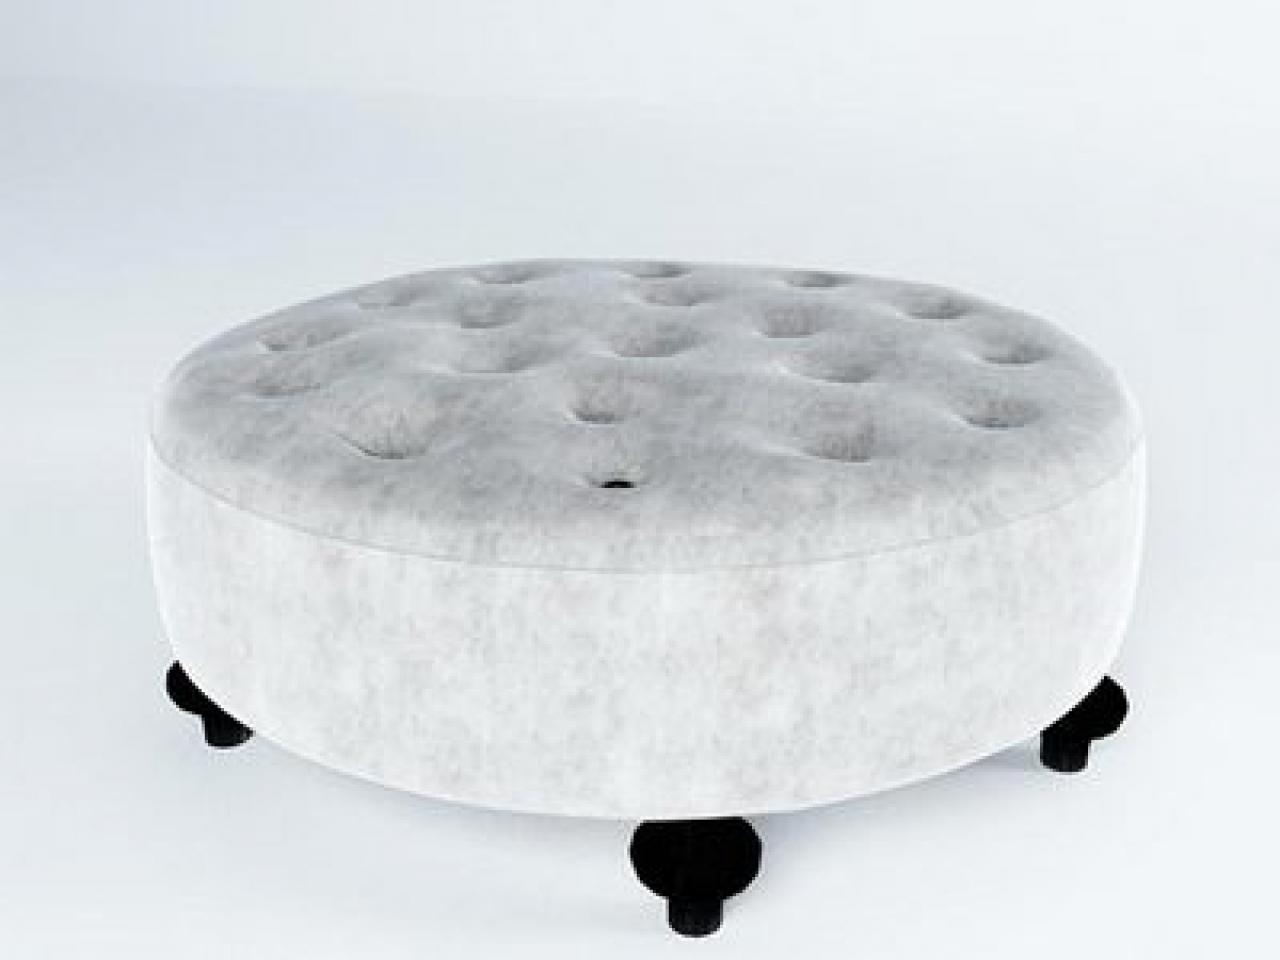 Sofa Round Chair Ikea For Sale Harvey Norman Living Room Furniture With Regard To Round Sofa Chair (Image 14 of 20)